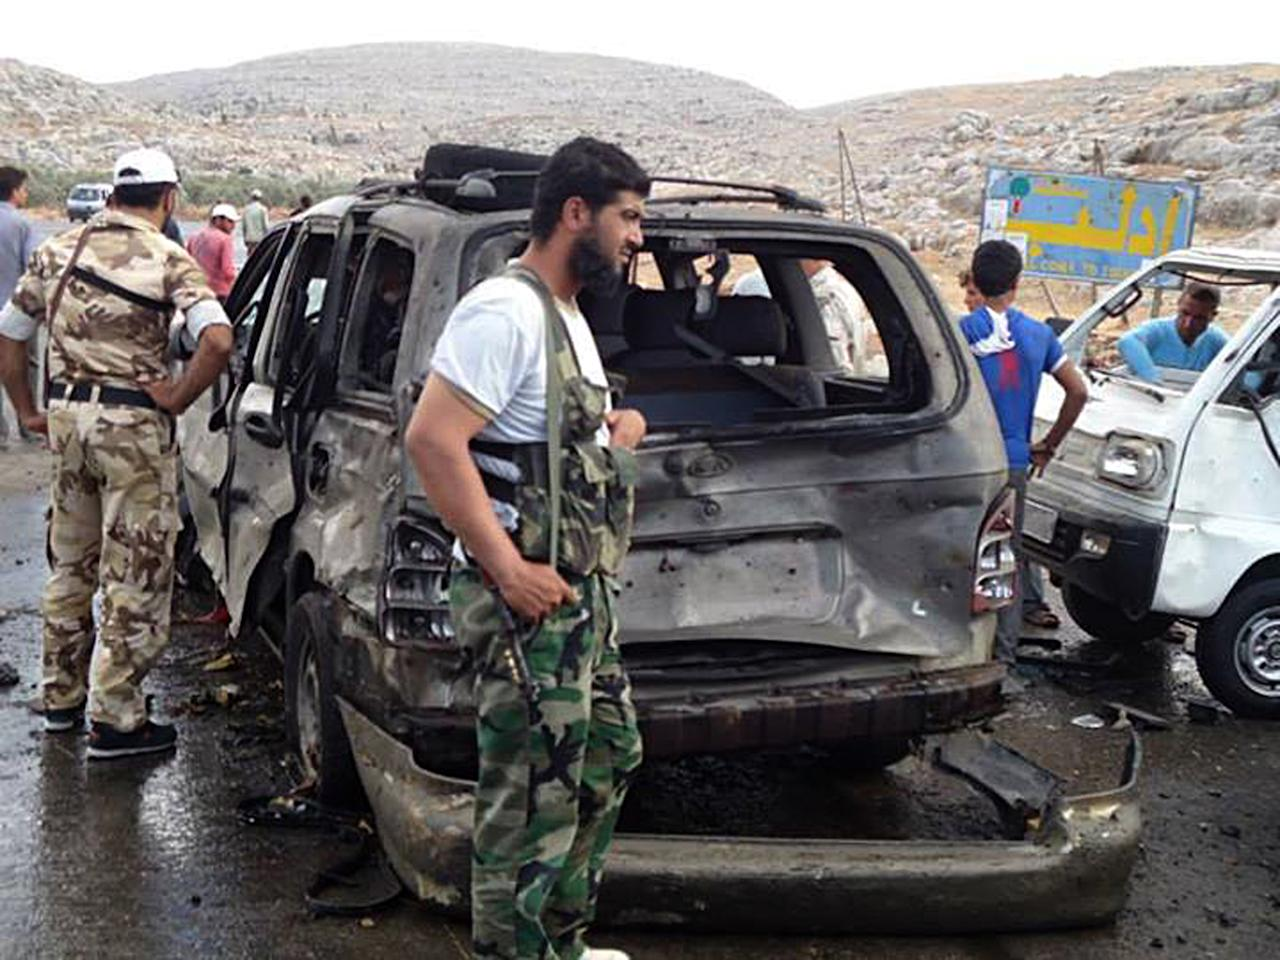 This citizen journalism image provided by Edlib News Network, ENN, which has been authenticated based on its contents and other AP reporting, shows Syrian rebels with damaged cars at the scene where a car bomb exploded at a crossing point along Syria's volatile border with Turkey, in Bab al-Hawa, Syria, Tuesday, Sept. 17, 2013. (AP Photo/Edlib News Network ENN)